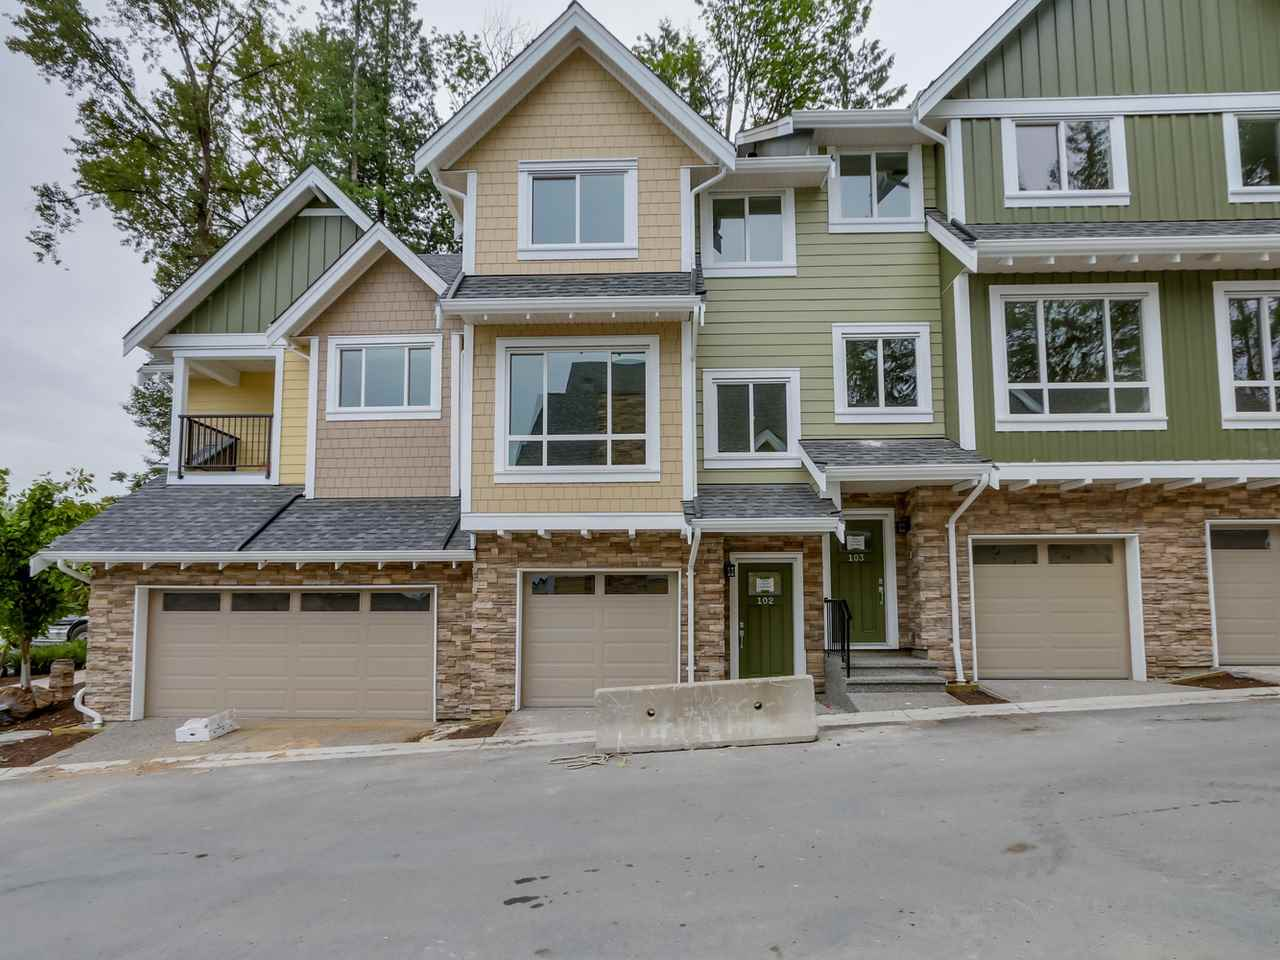 "Main Photo: 303 1405 DAYTON Street in Coquitlam: Burke Mountain Townhouse for sale in ""ERICA"" : MLS® # R2119298"